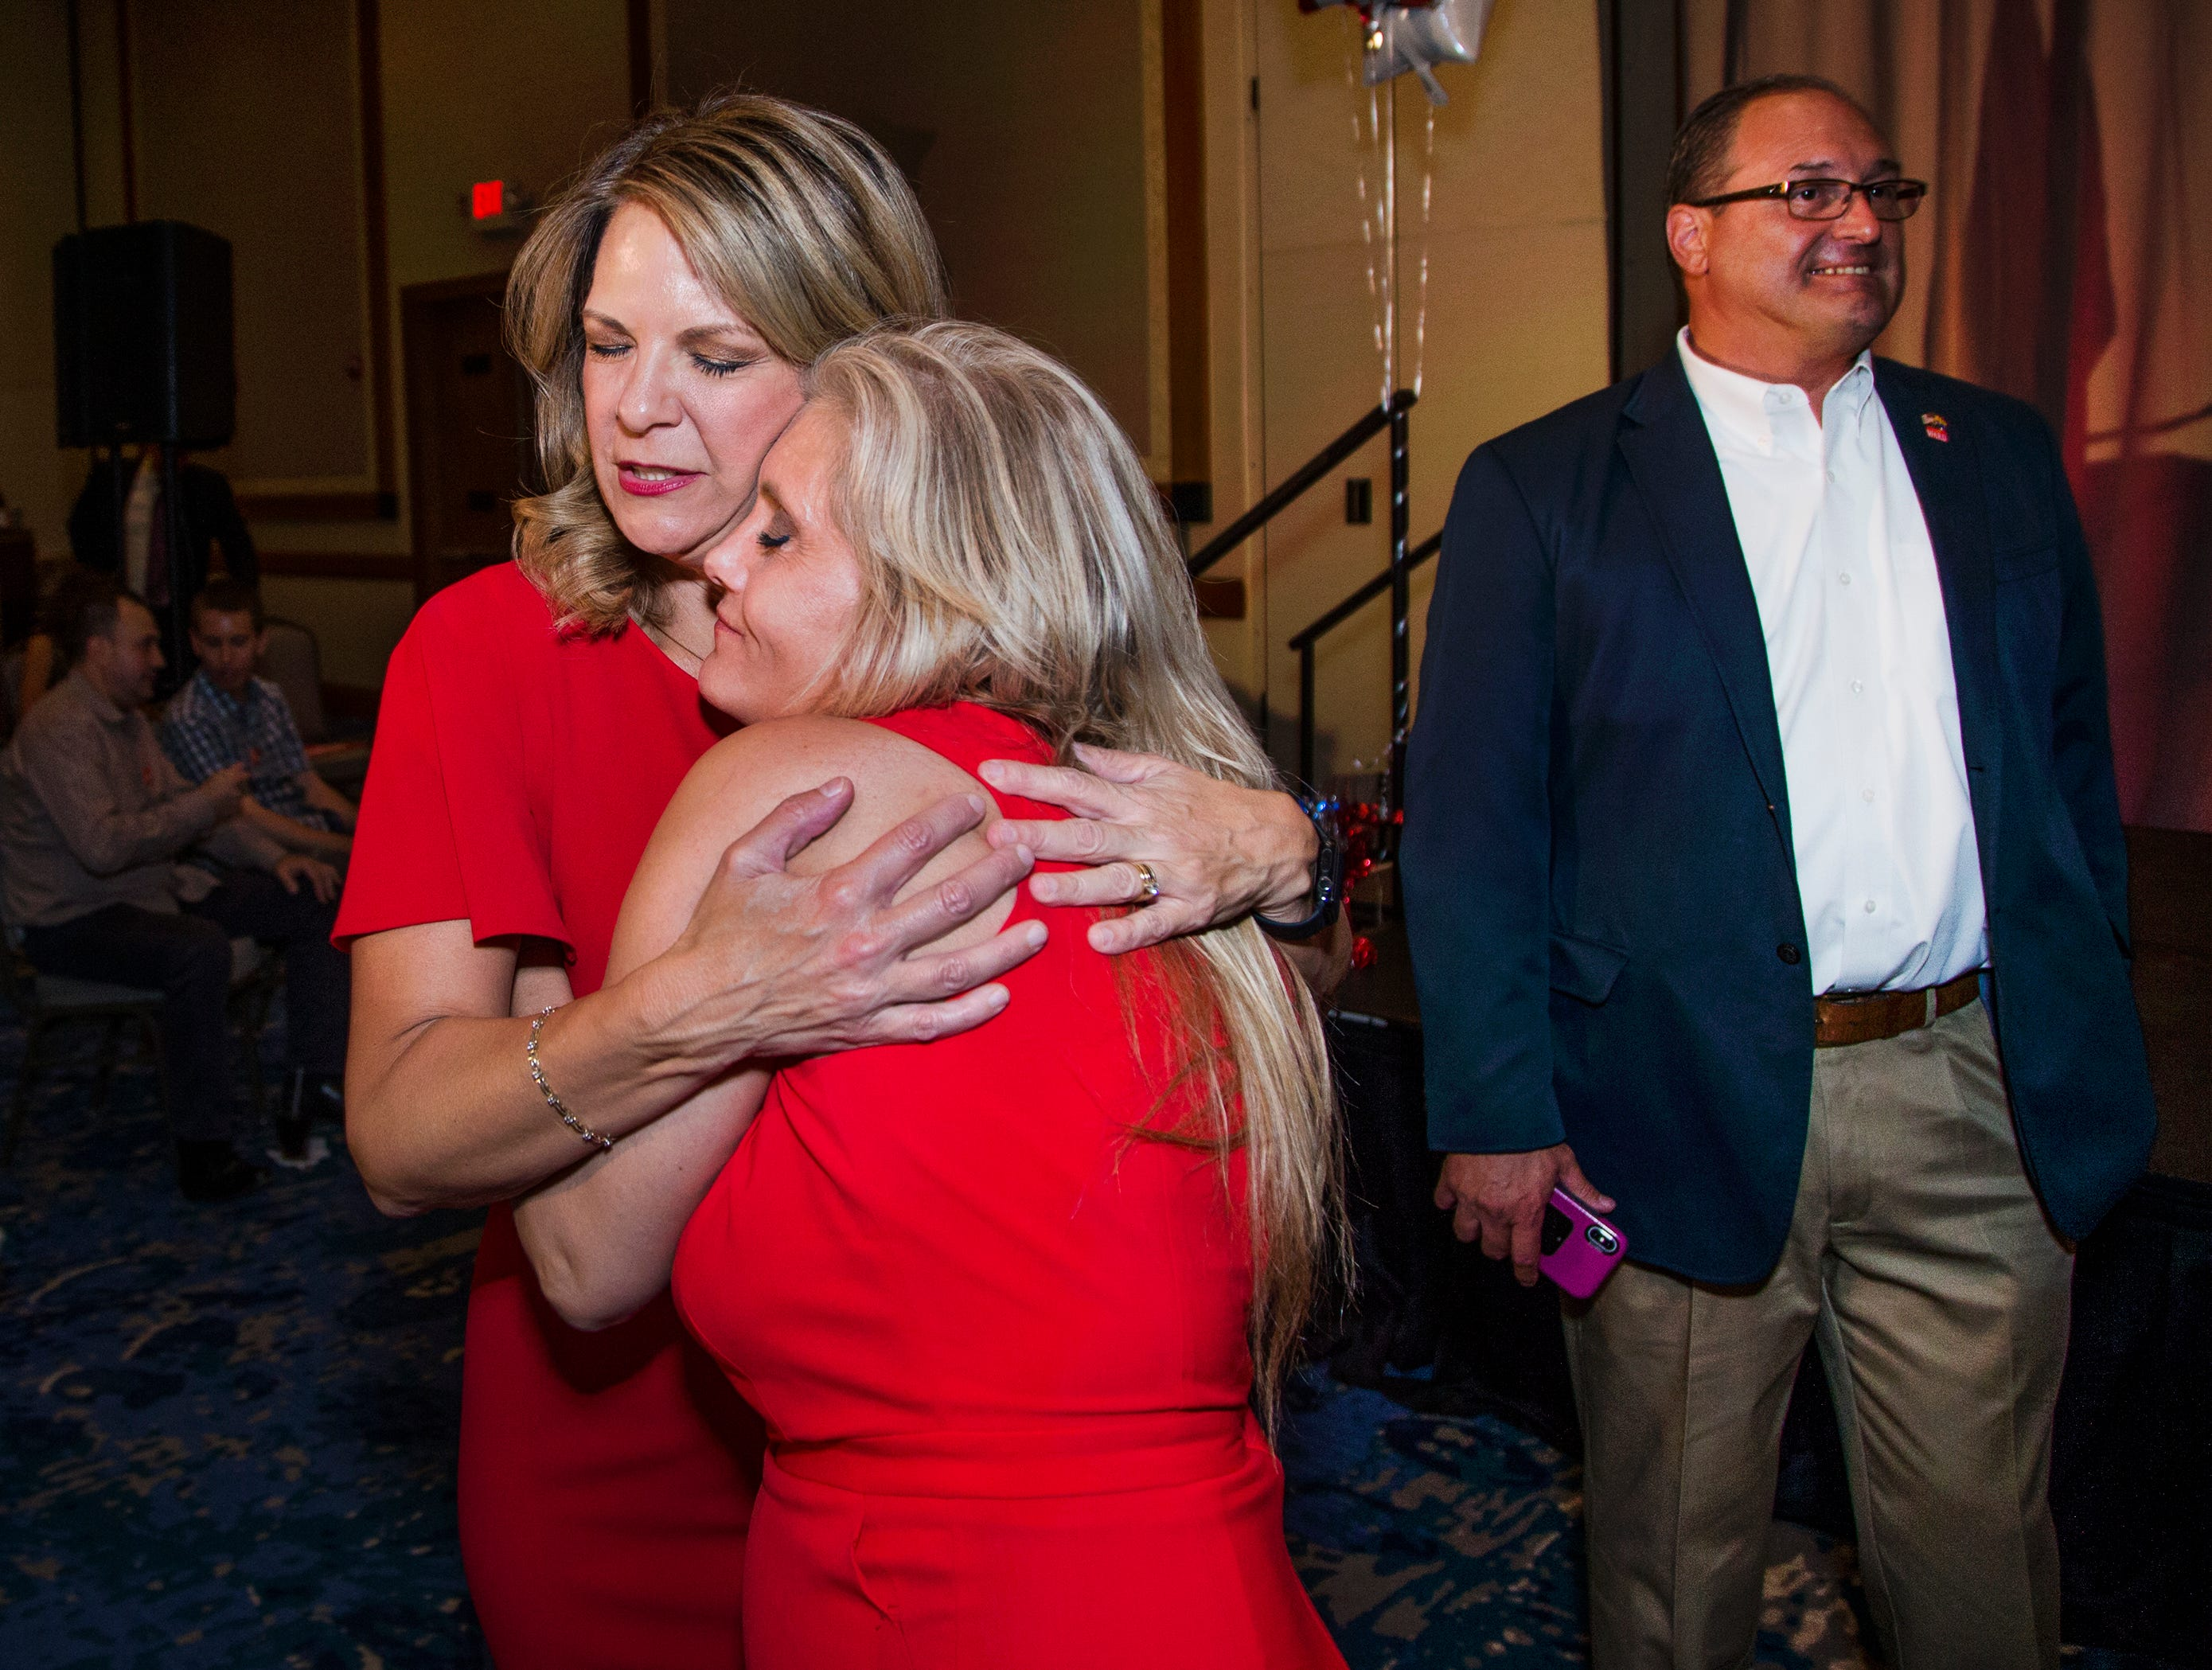 Kelli Ward (left) hugs supporter Suzette Meyers during a primary election night party at Embassy Suites Scottsdale on Aug. 28, 2018. Ward's husband, Michael, is at right.